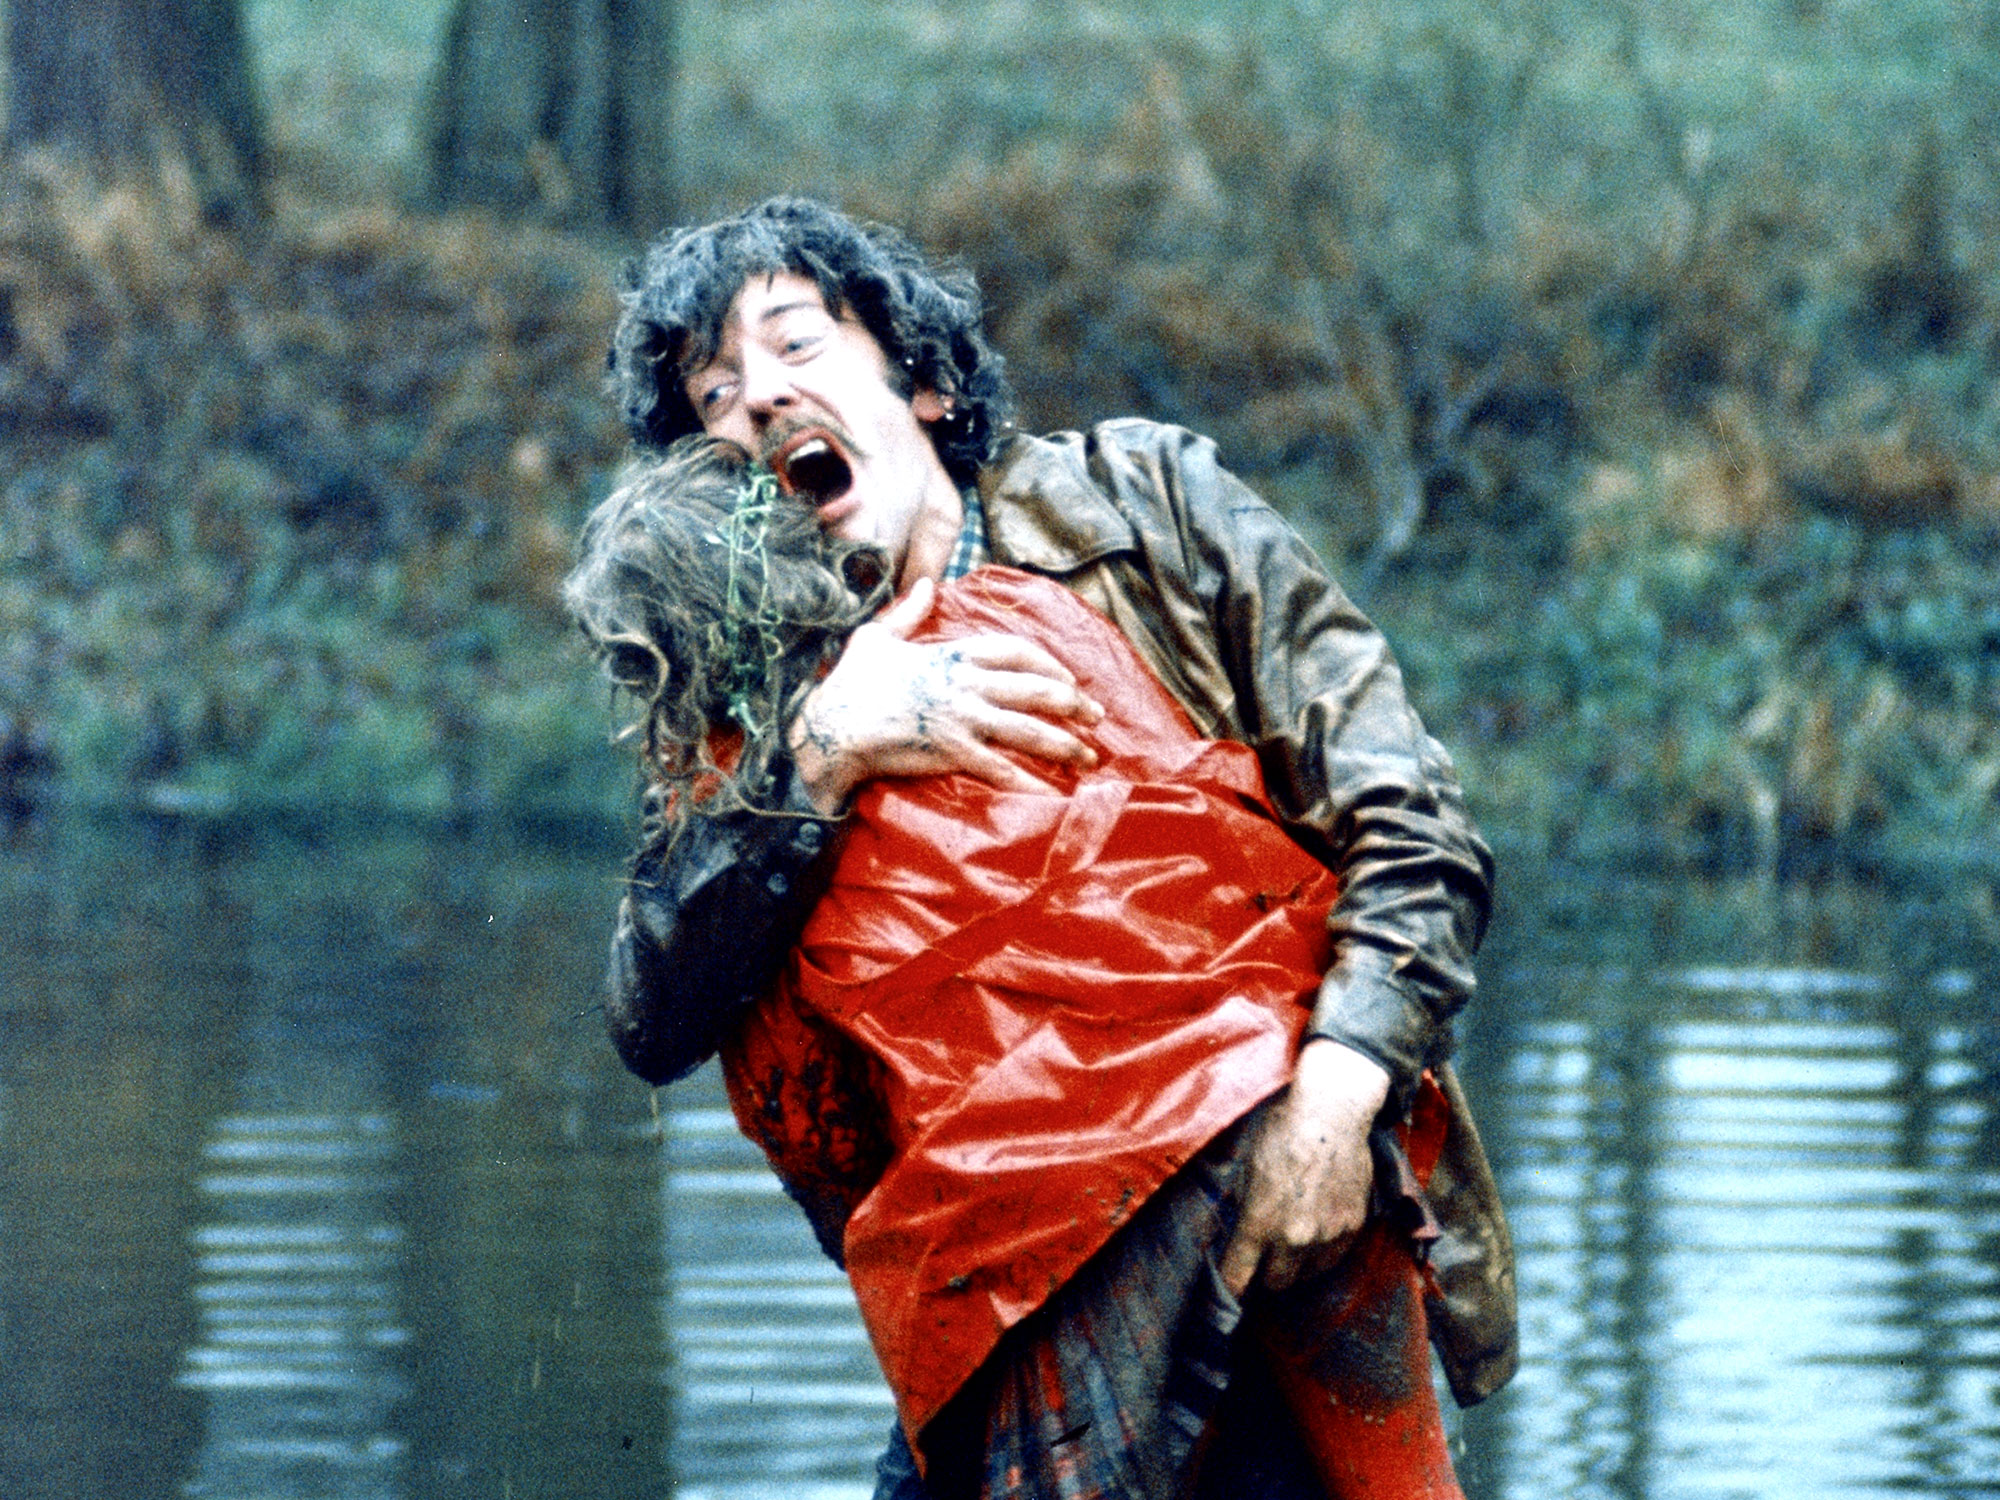 Exclusive: Watch the brand new 4K restoration trailer for Don't Look Now